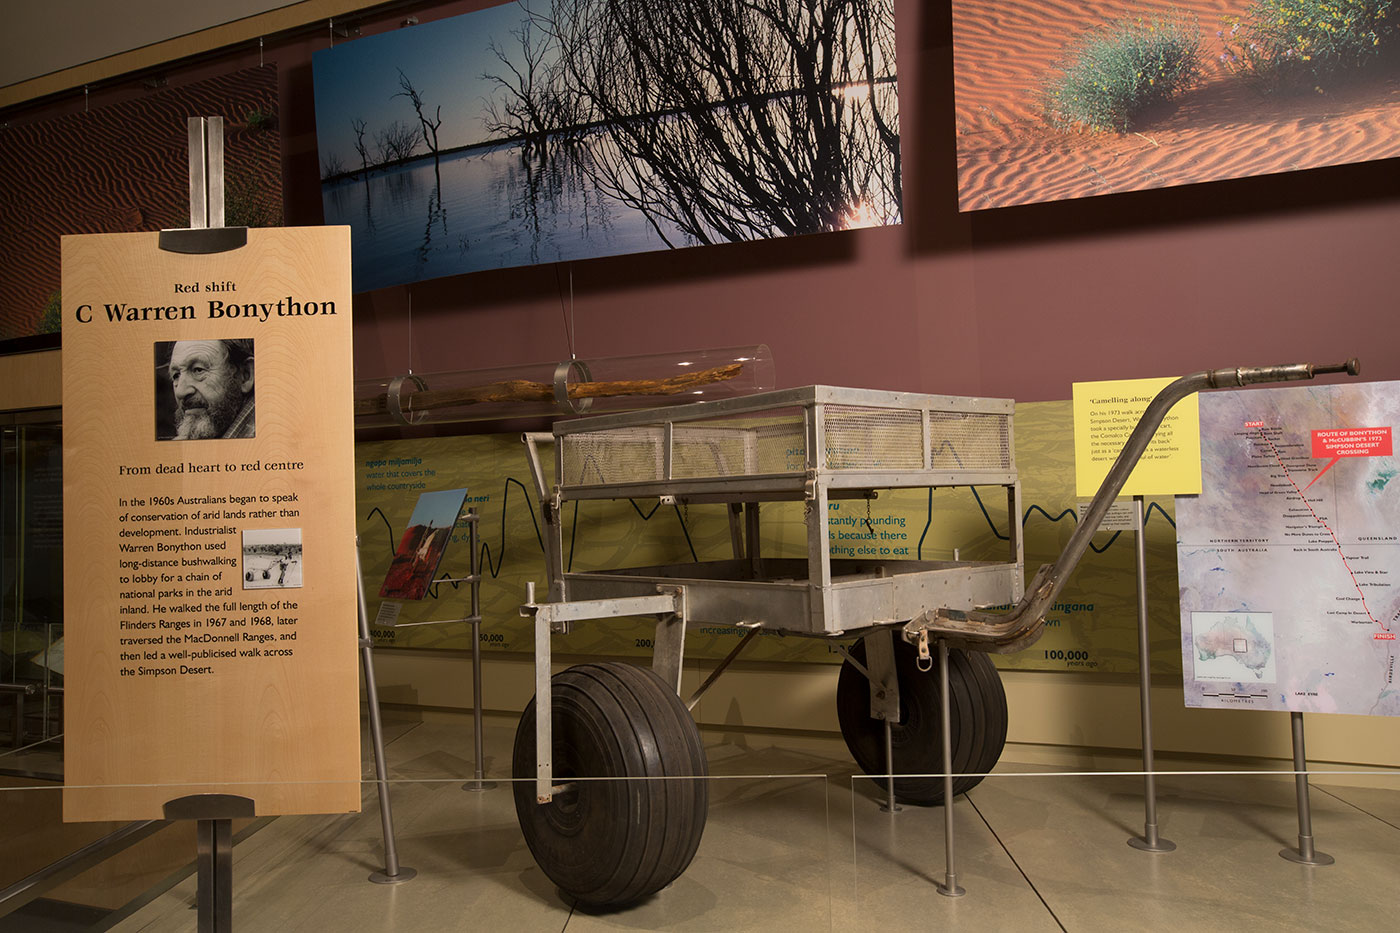 A metal frame on two large tyres, on show in an exhibition. - click to view larger image